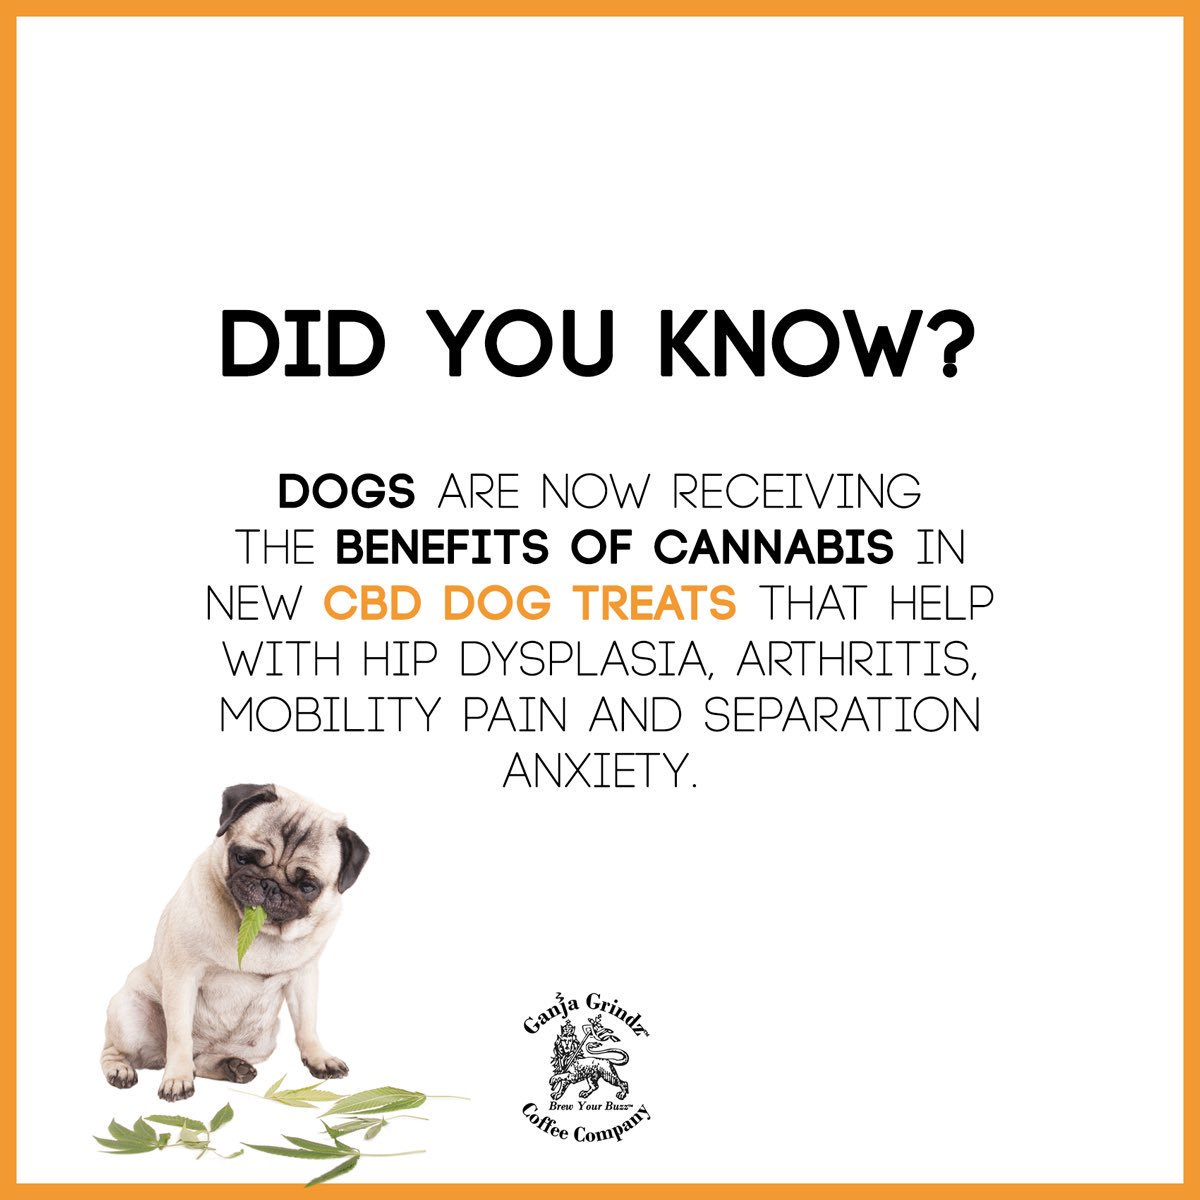 CBD Oil for Dogs: Can Cannabis Benefit Your Furry Friend?